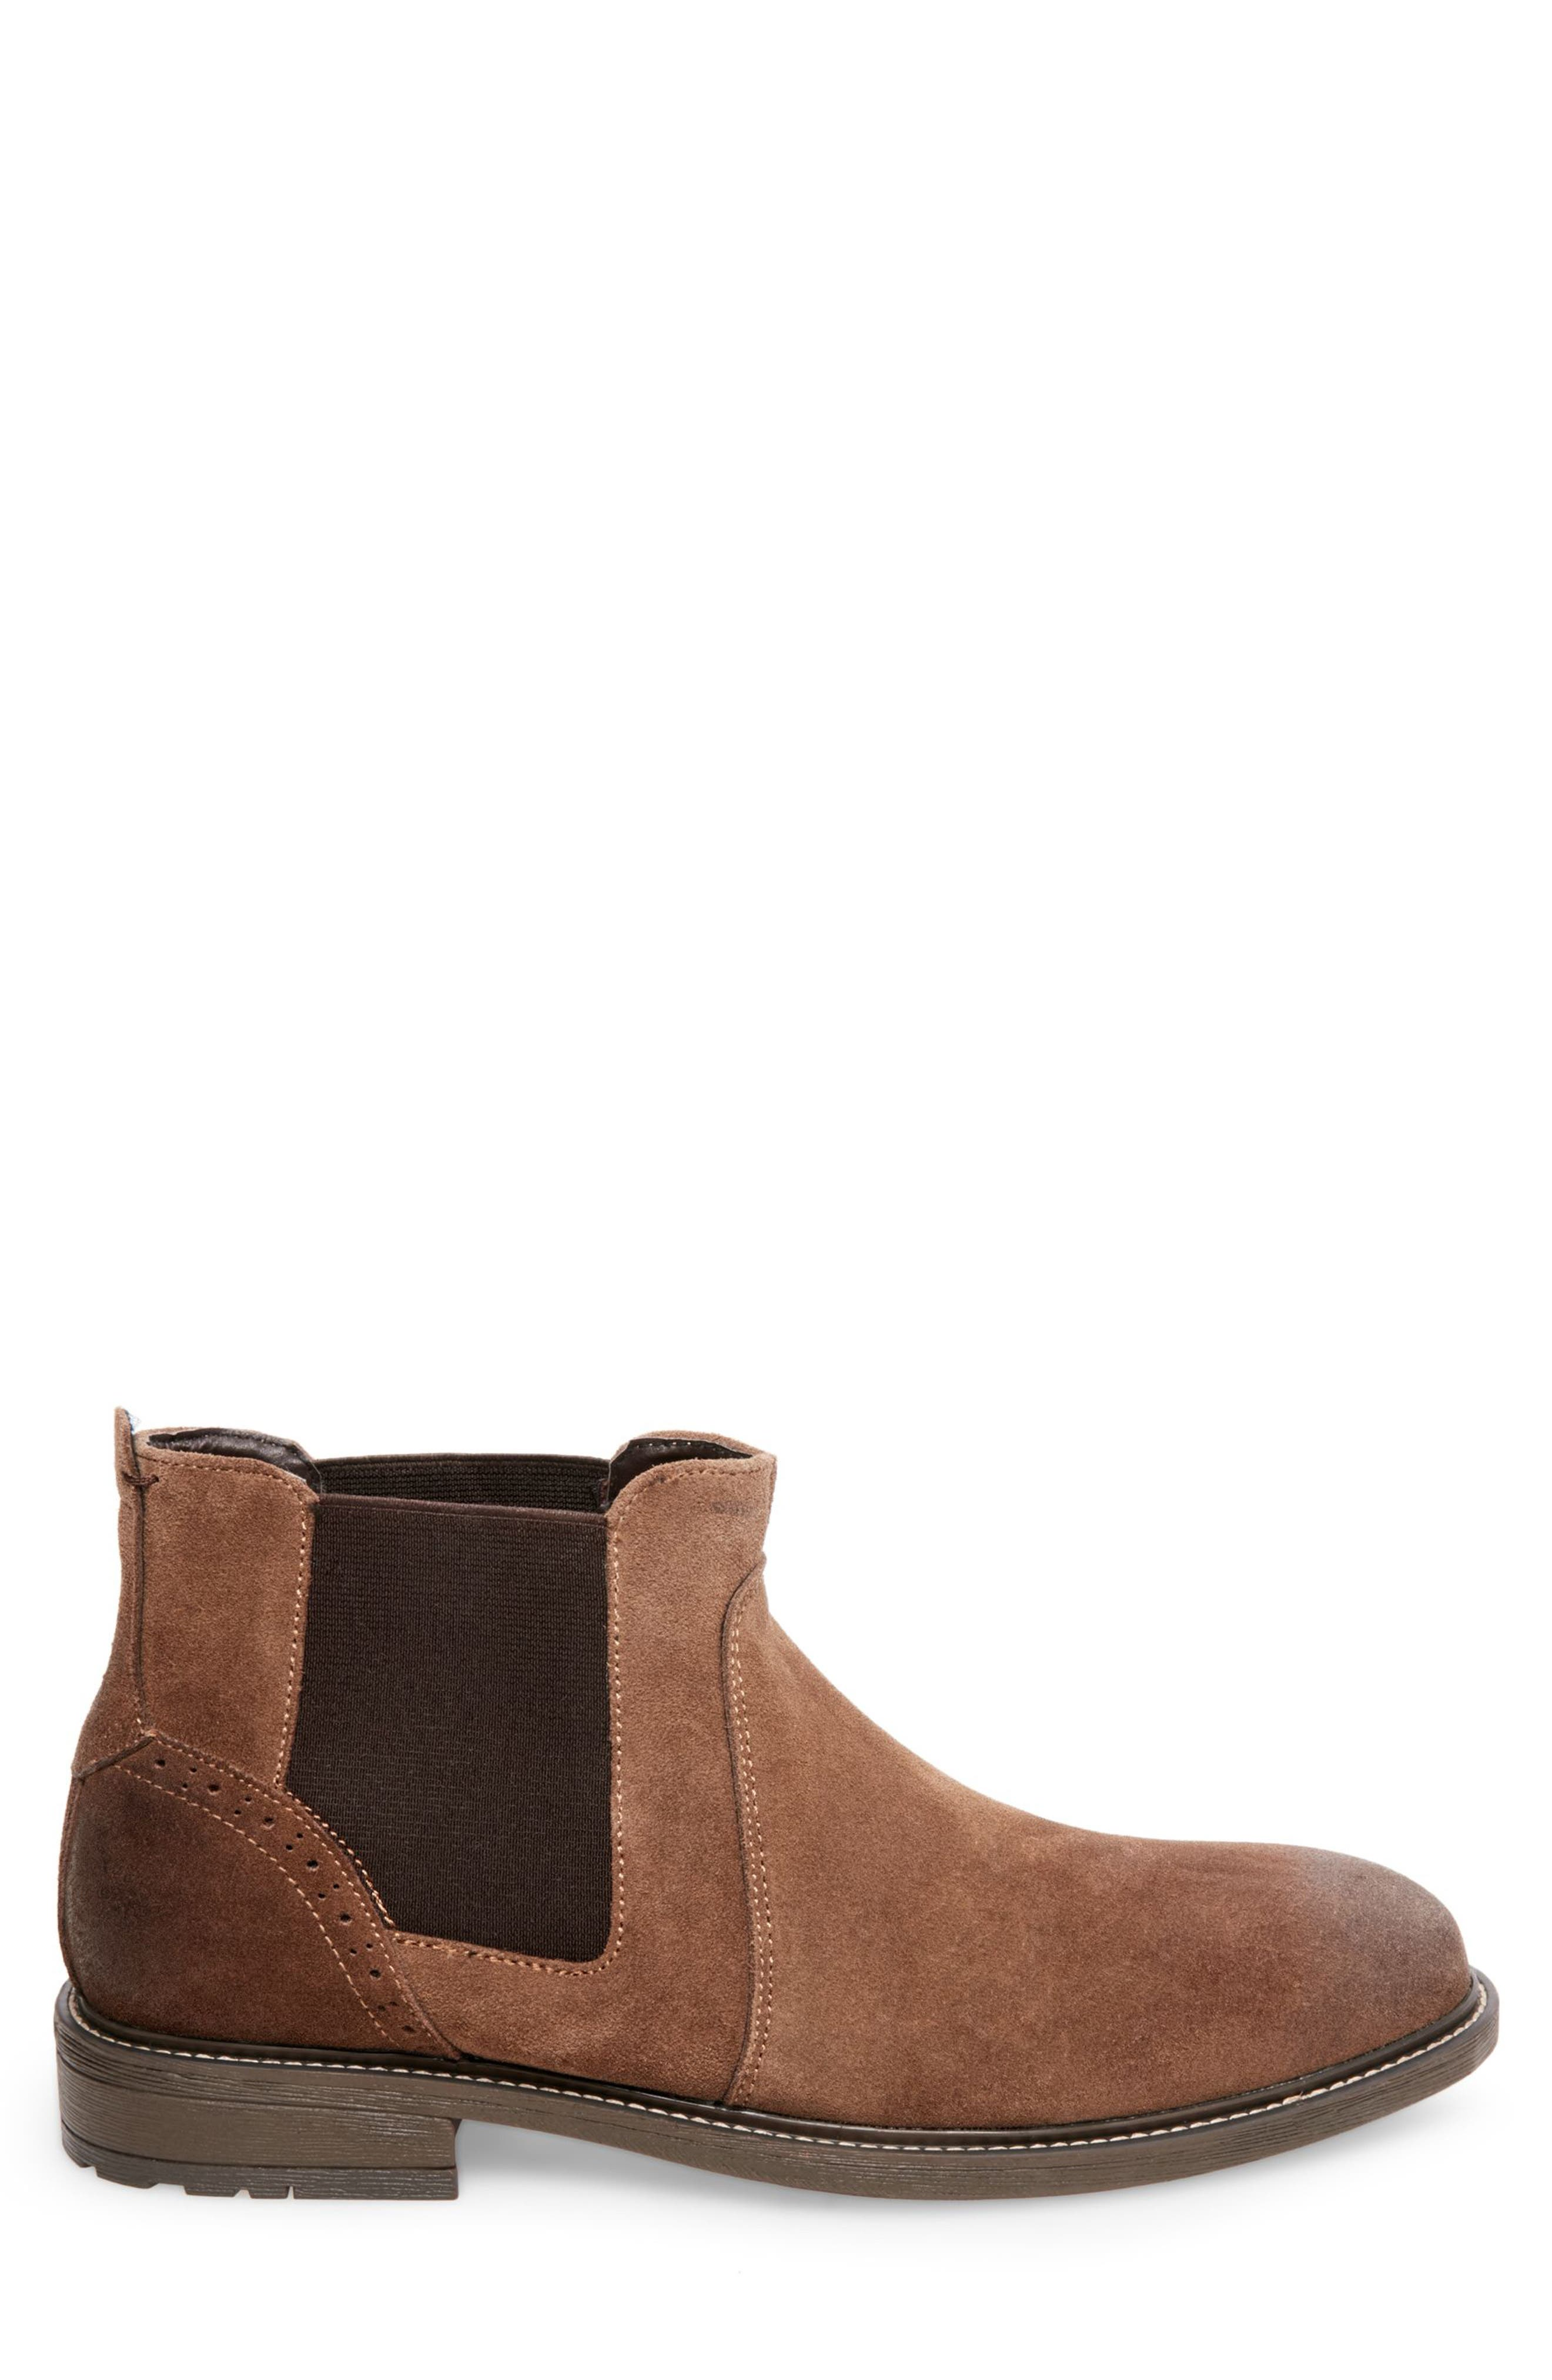 Tampa Chelsea Boot,                             Alternate thumbnail 2, color,                             CAMEL SUEDE